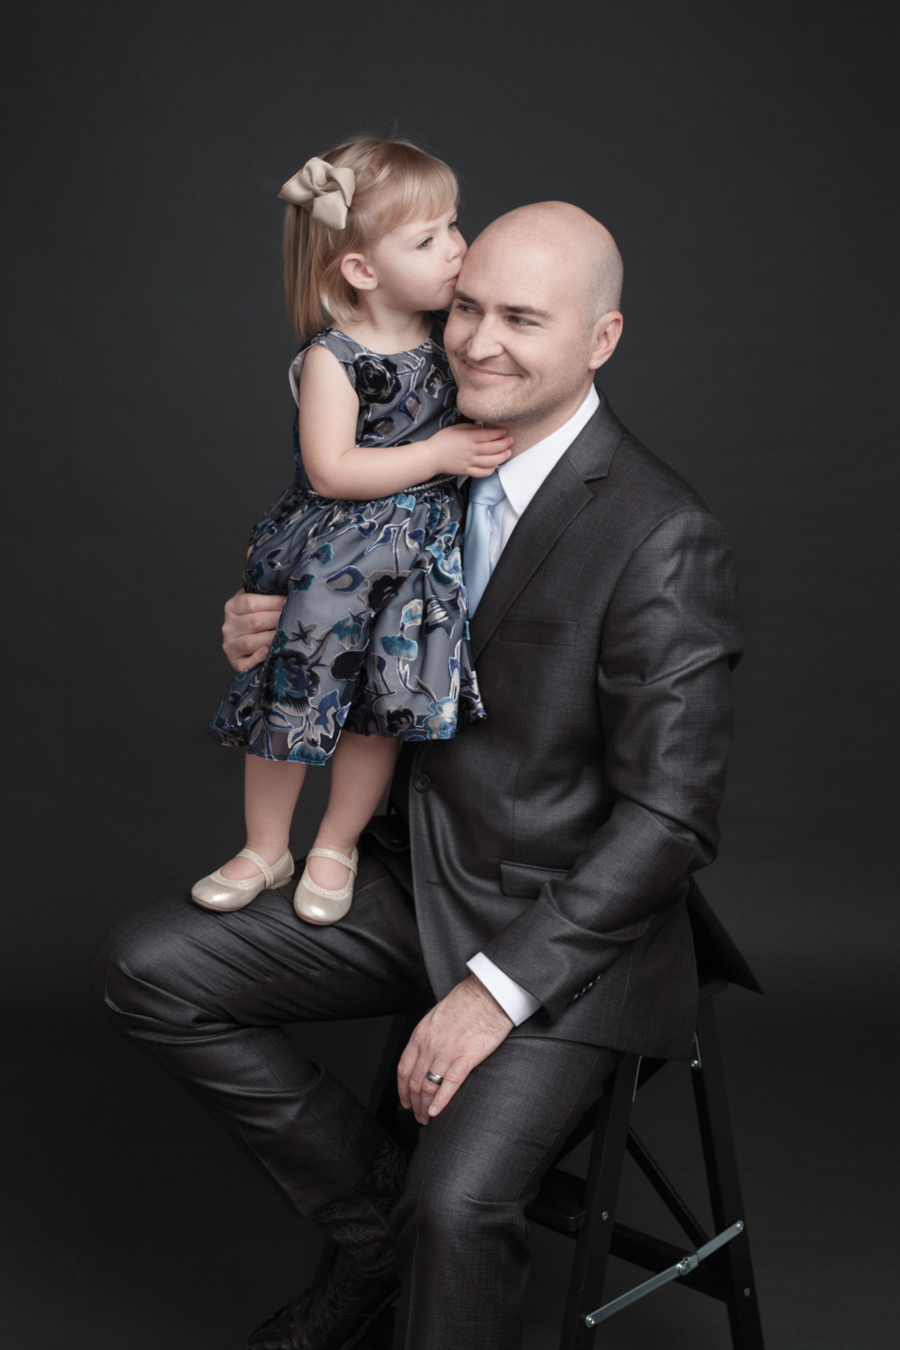 anna_kraft_photography_georgetown_square_studio_family_portrait_austin_photo-1.jpg